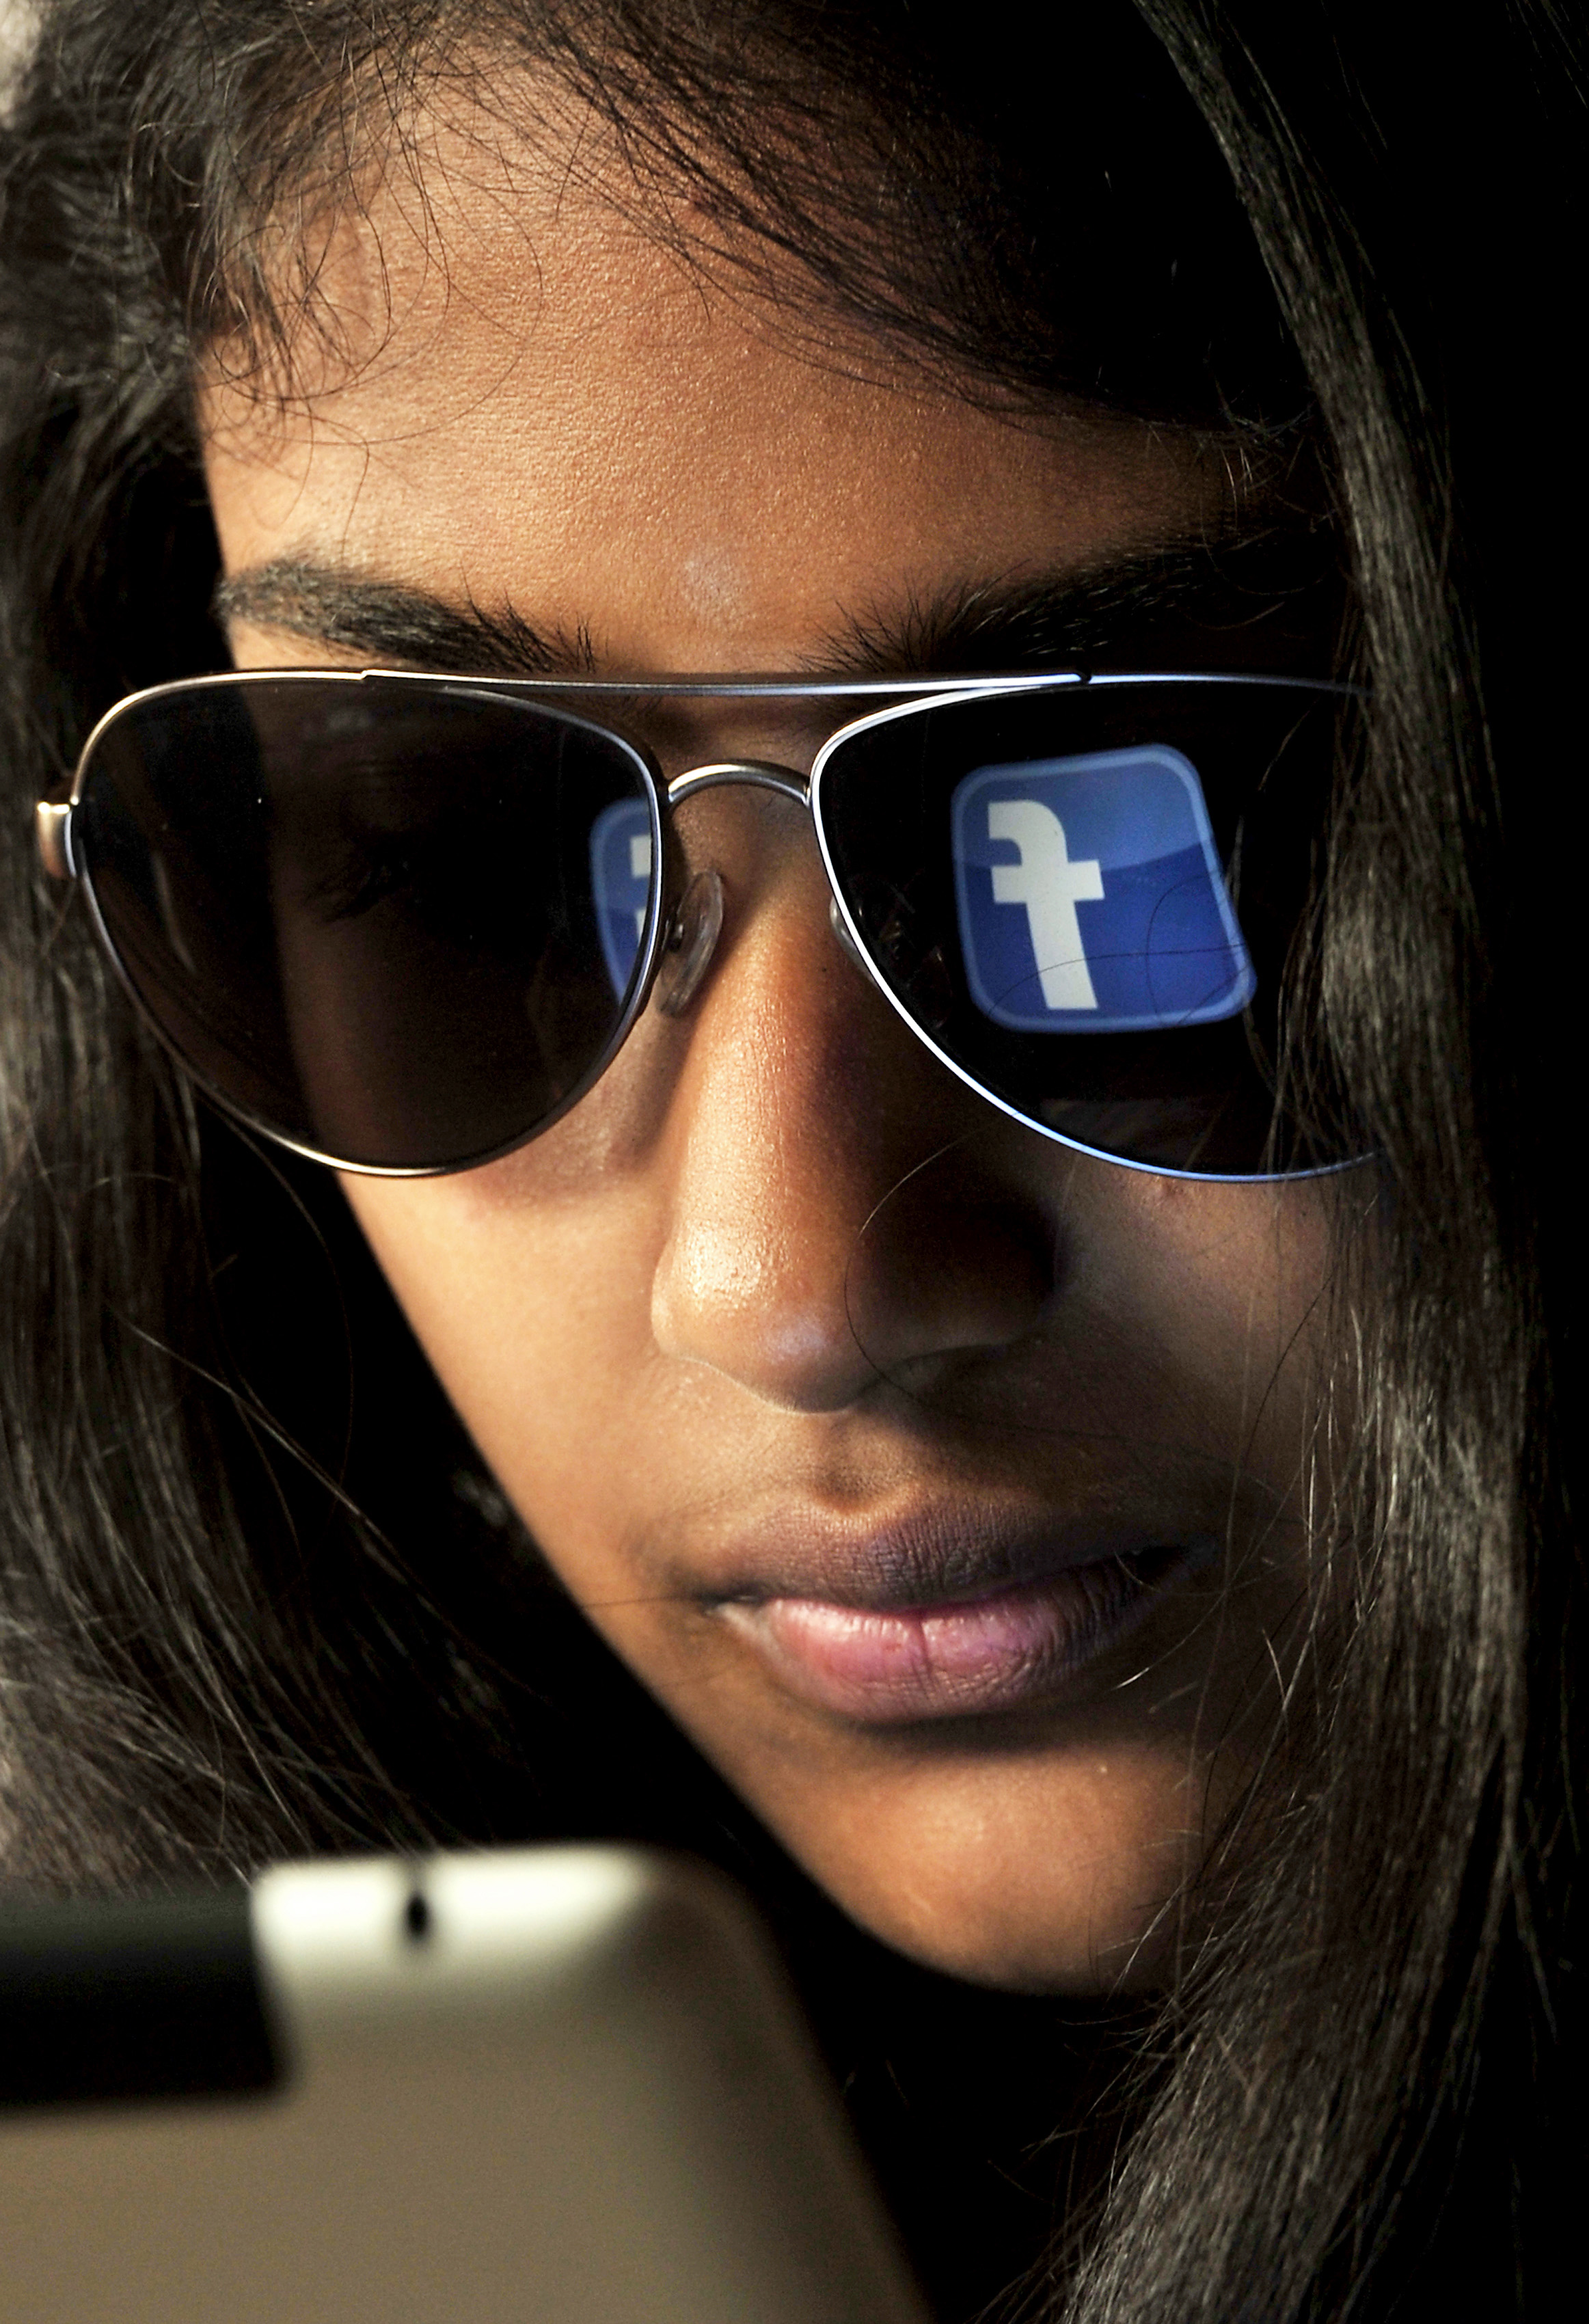 The next billion: Facebook offers $1 credits for mobile signups and referrals in India